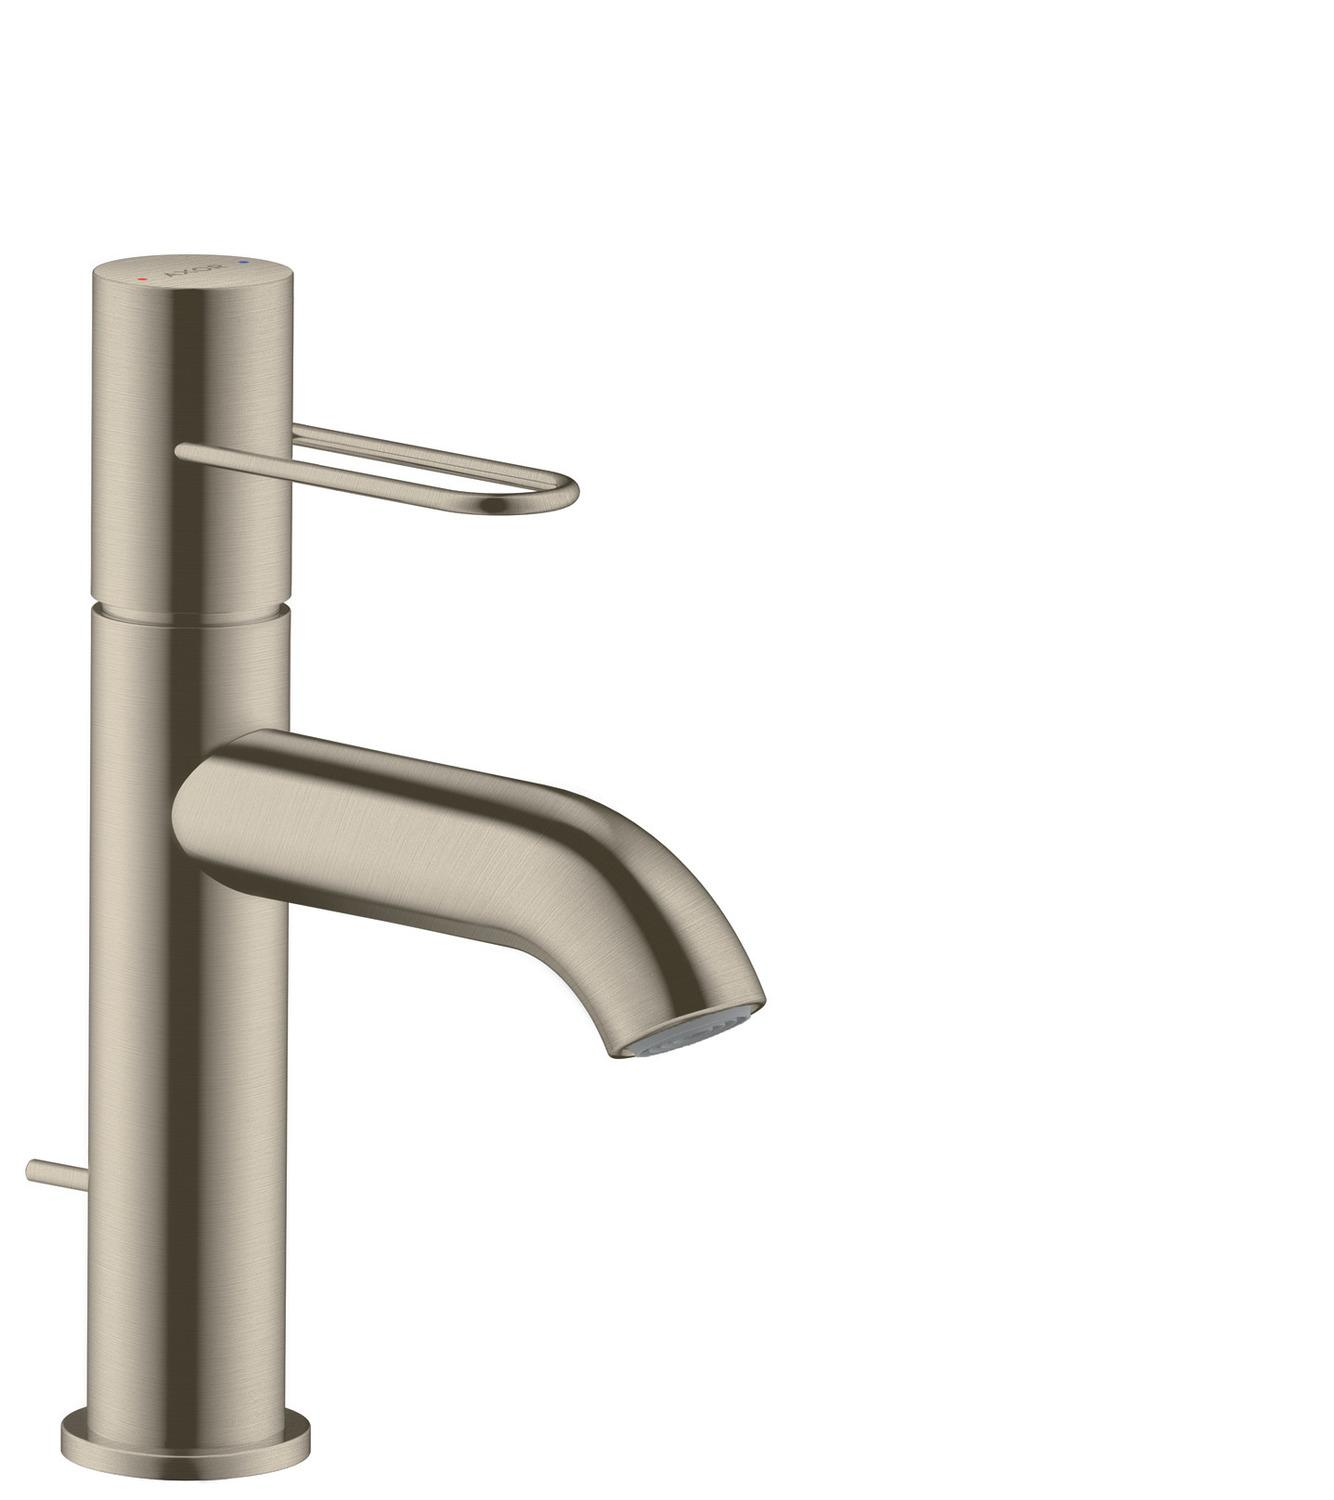 Brushed Nickel Single lever basin mixer 100 with loop handle and pop-up waste set